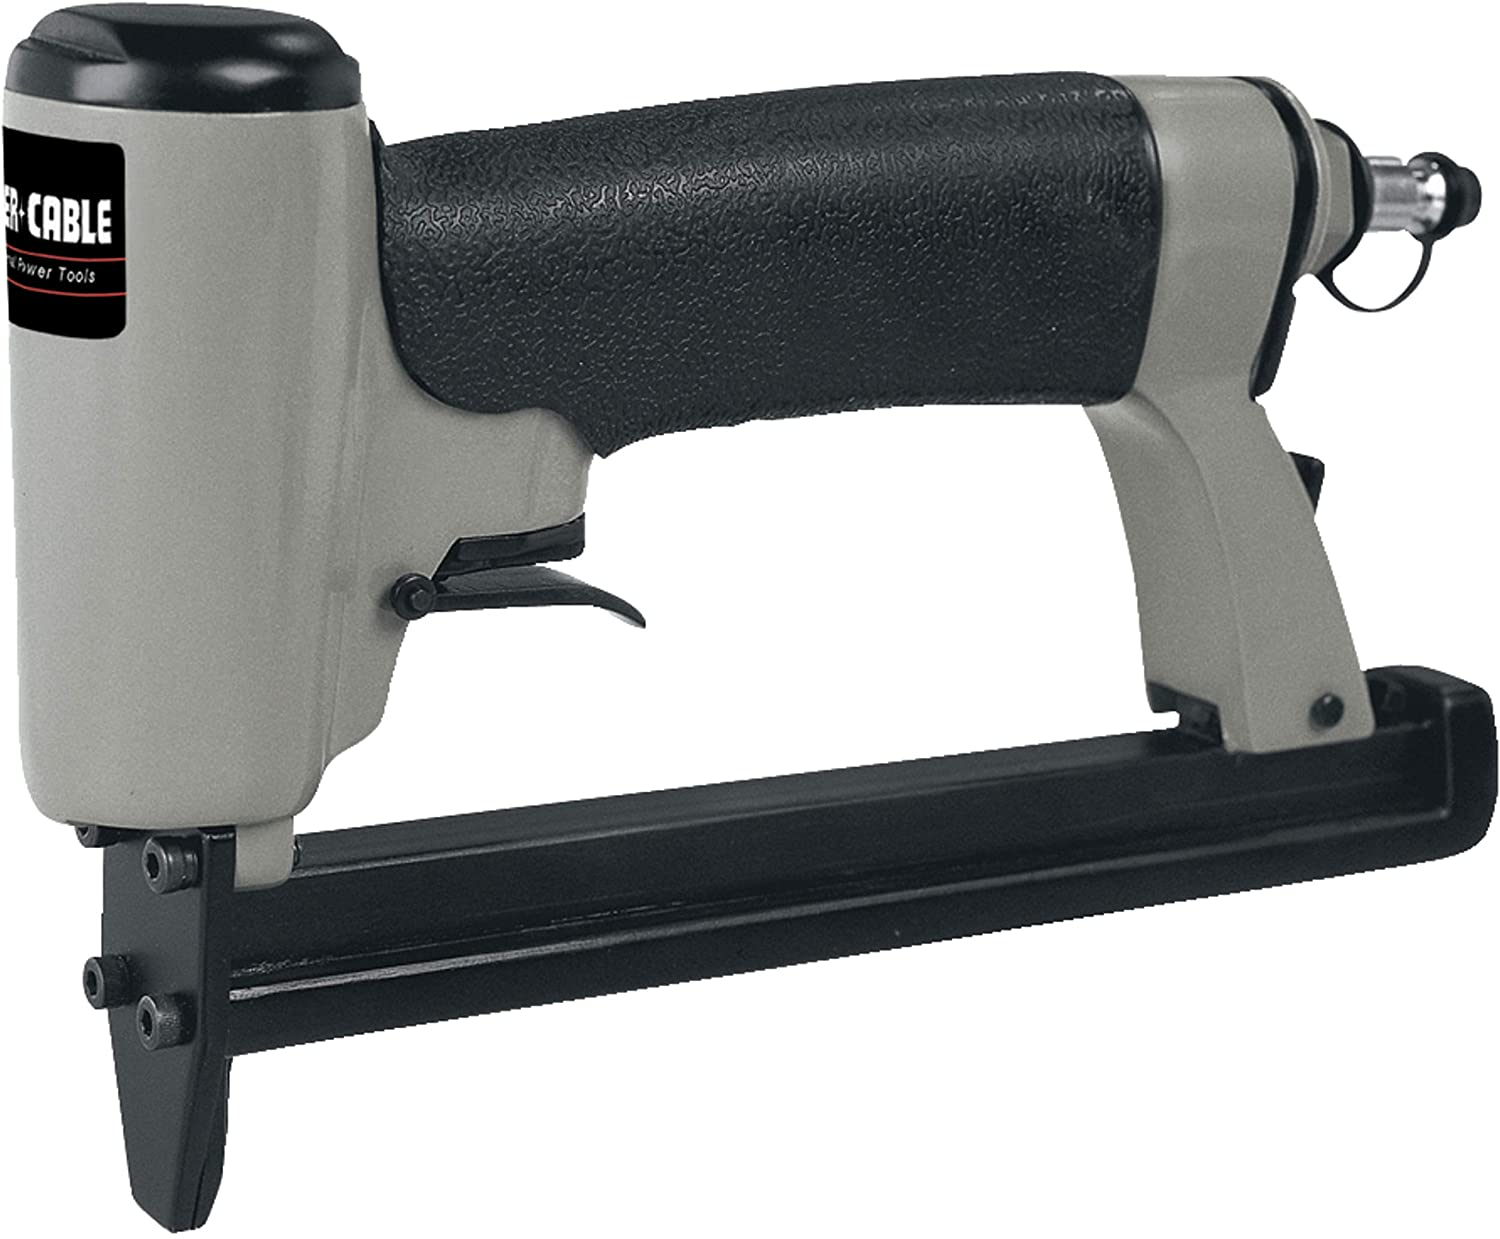 Proter –Cable US58 Stapler